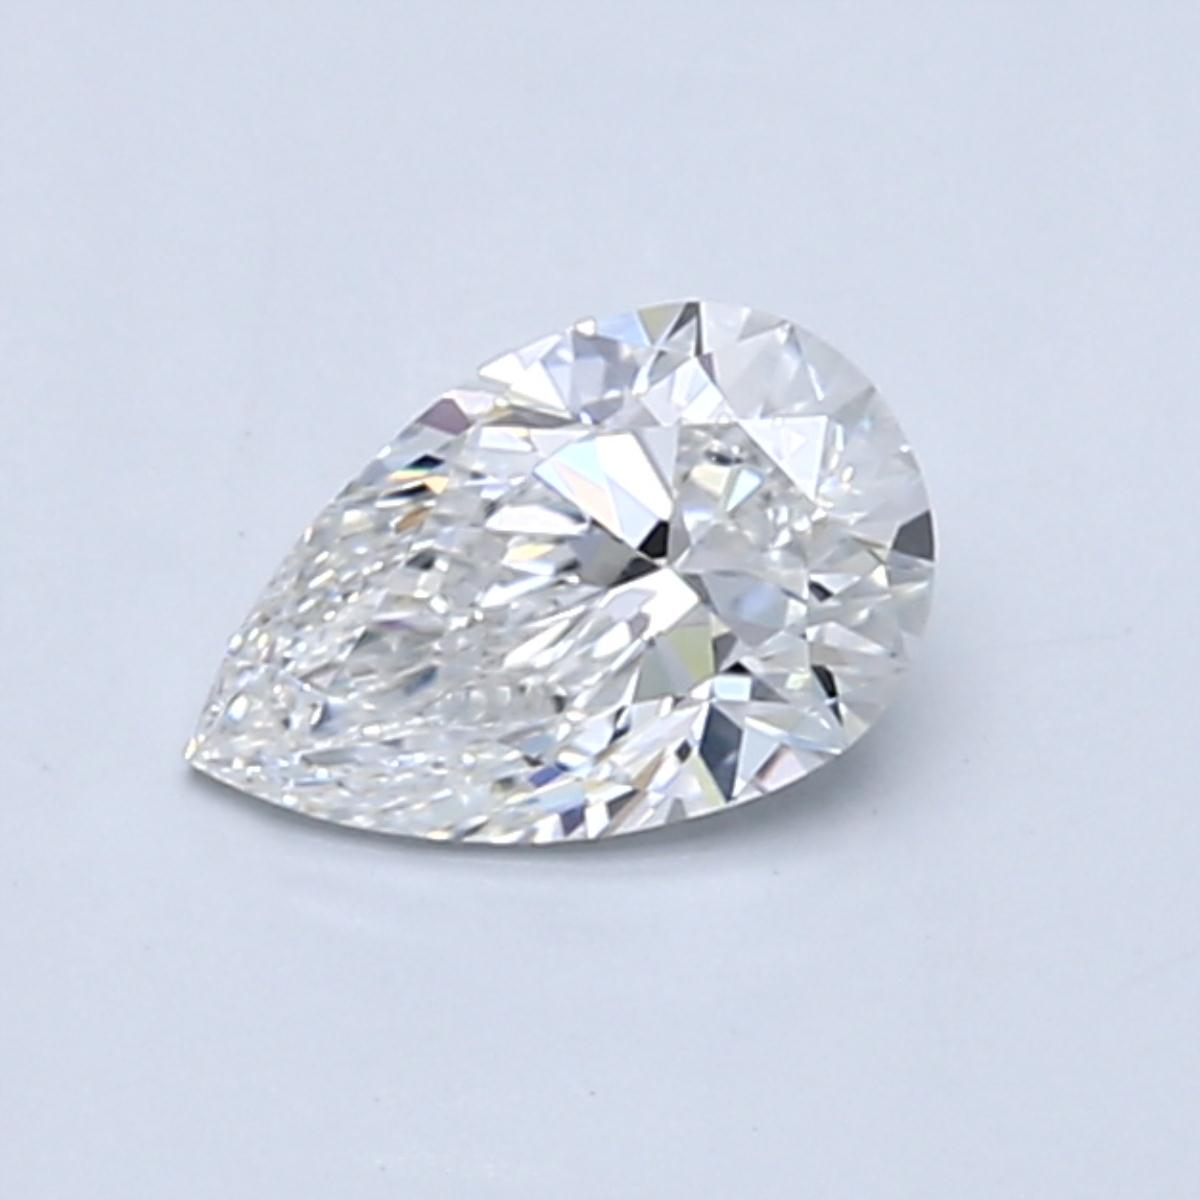 .60 carat Pear Diamond, Very Good cut, graded by the GIA laboratories.